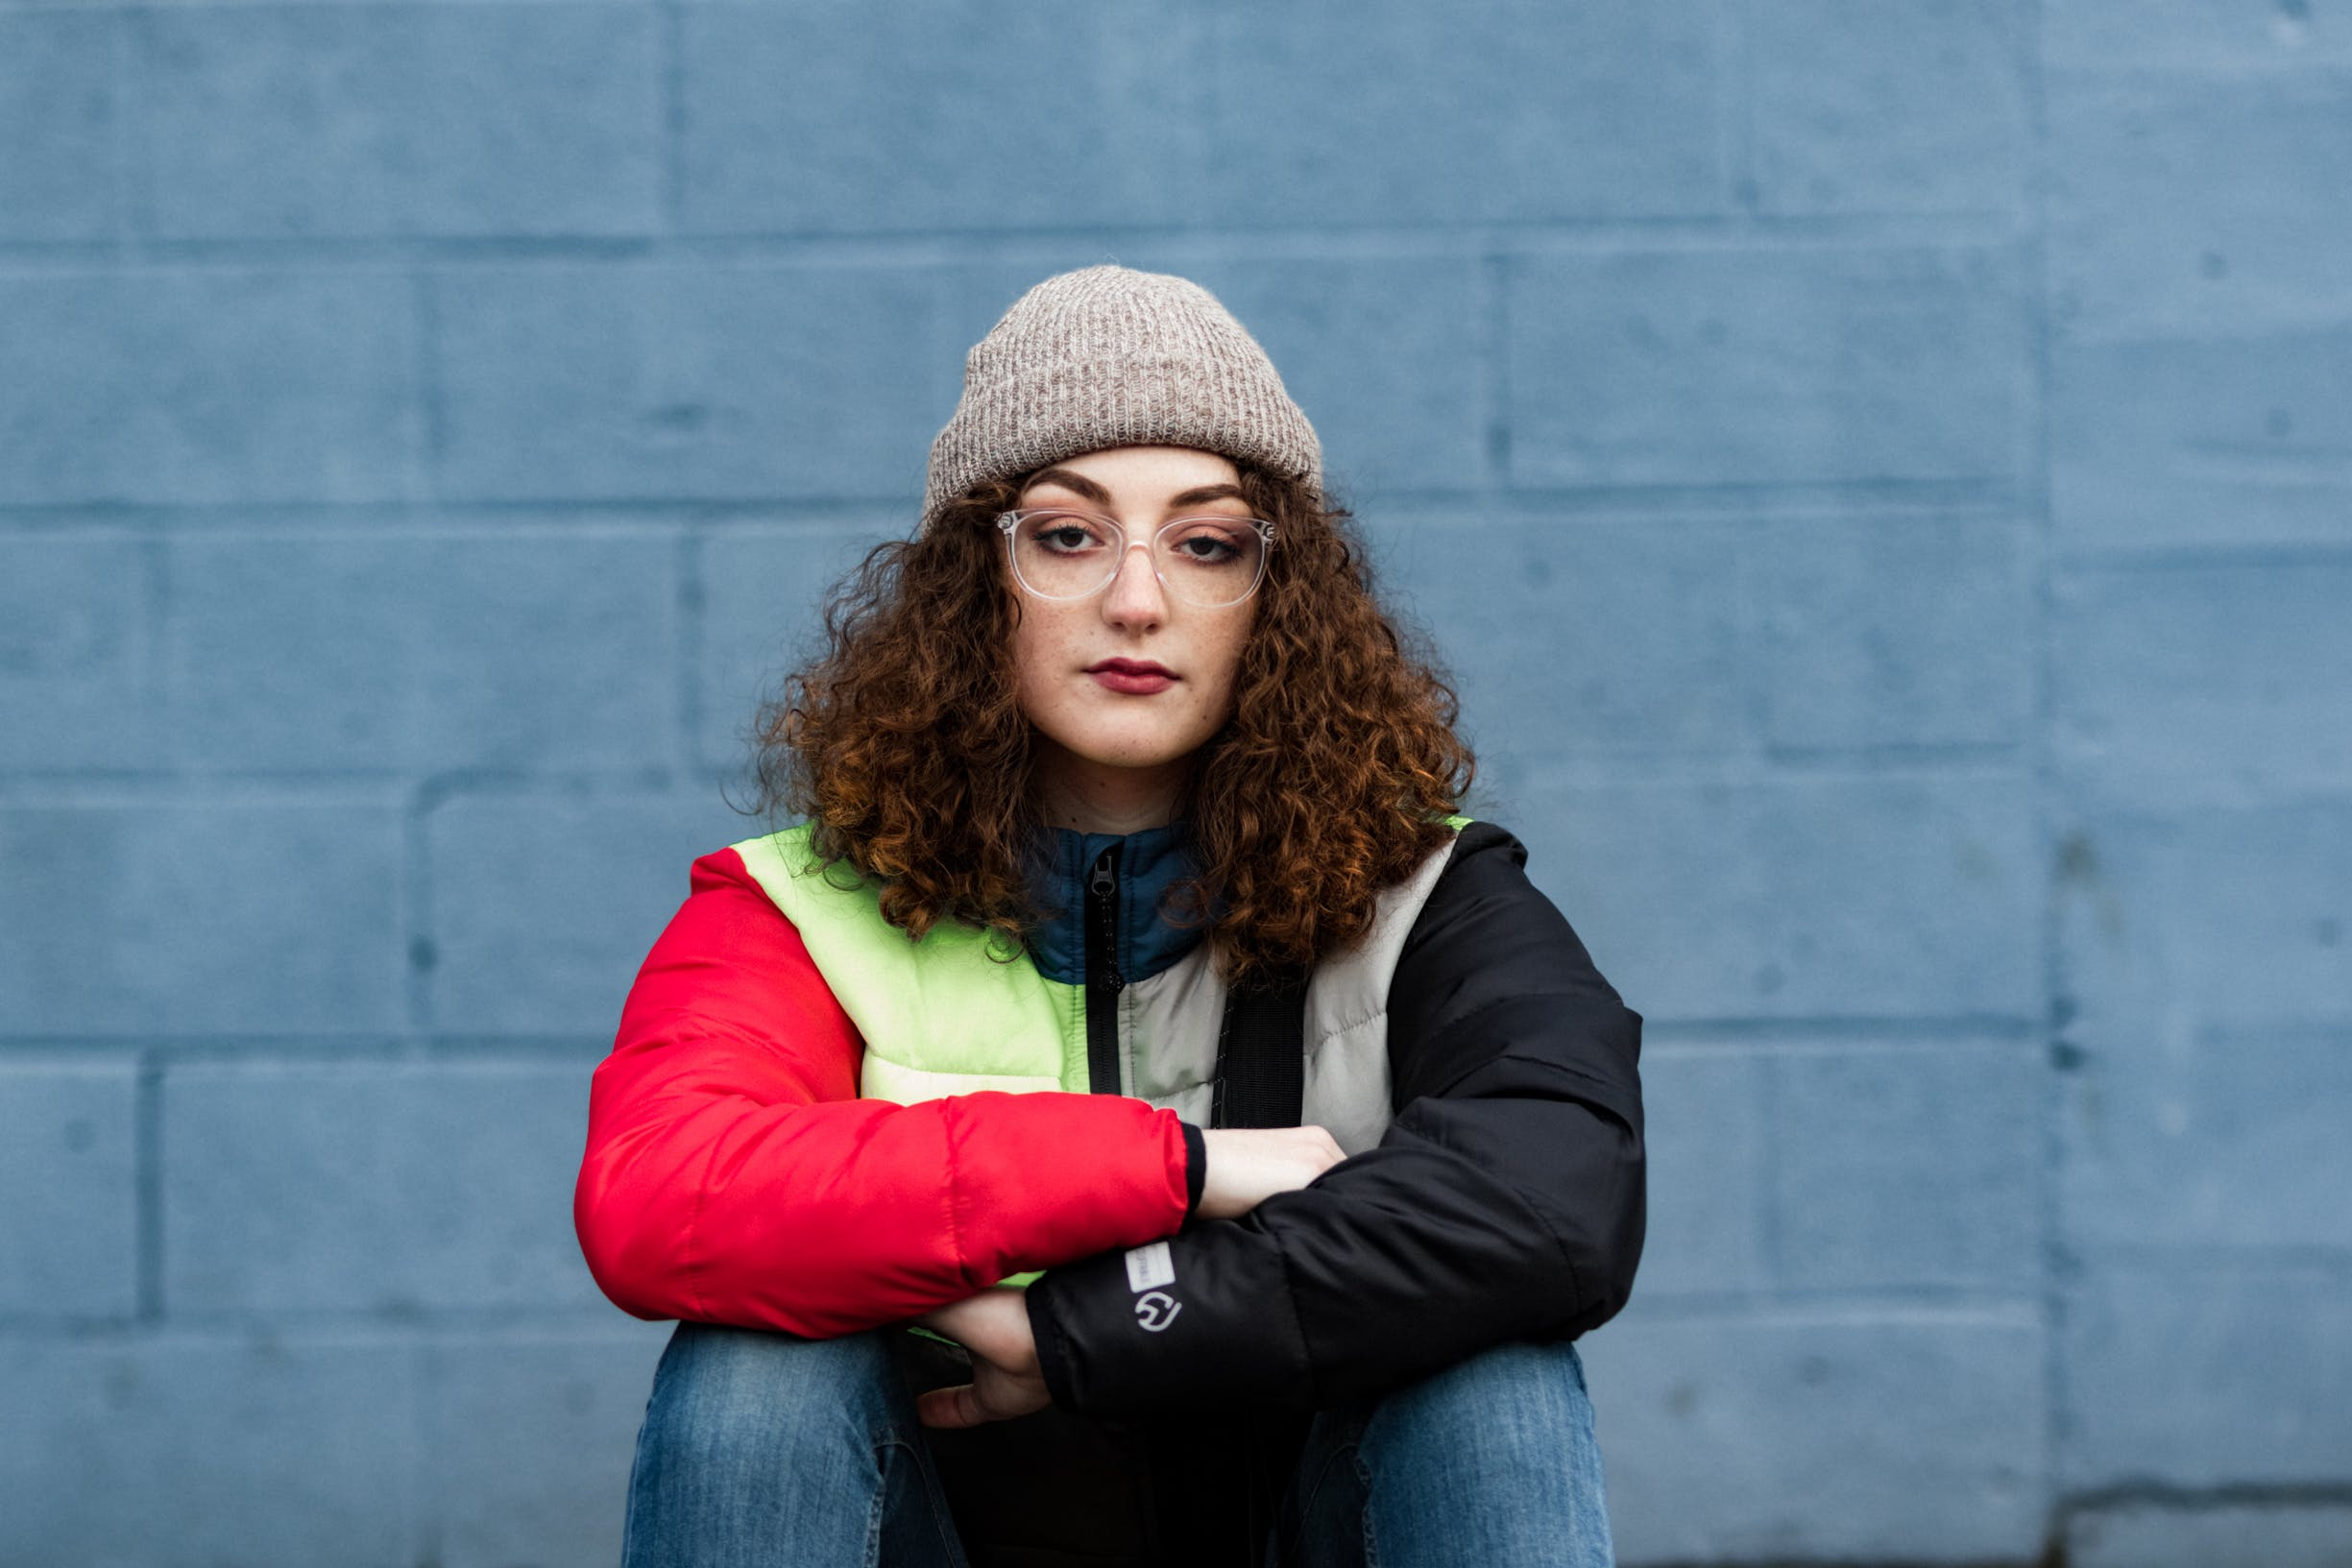 Woman Wearing Red and Black Zip-up Jacket